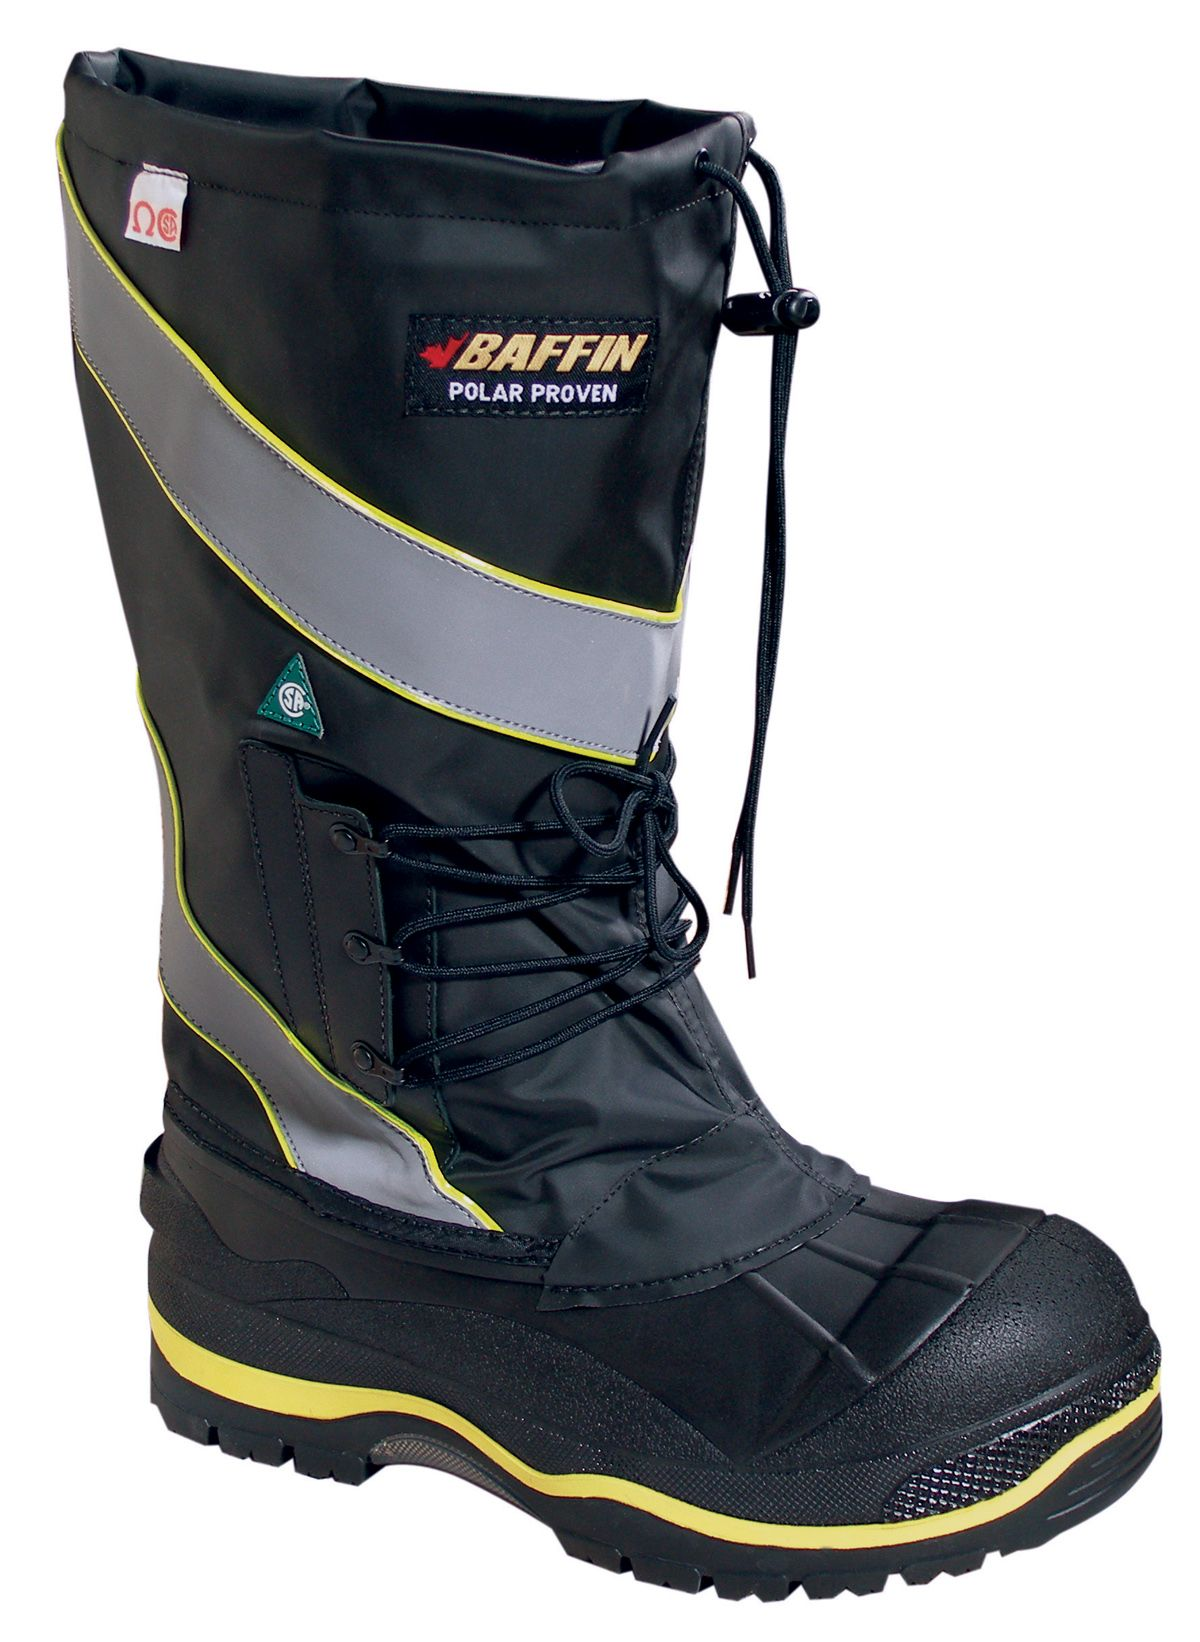 6c8c1164c80 Baffin Derrick Men's Composite Toe Extreme Cold Work Boots | For my ...